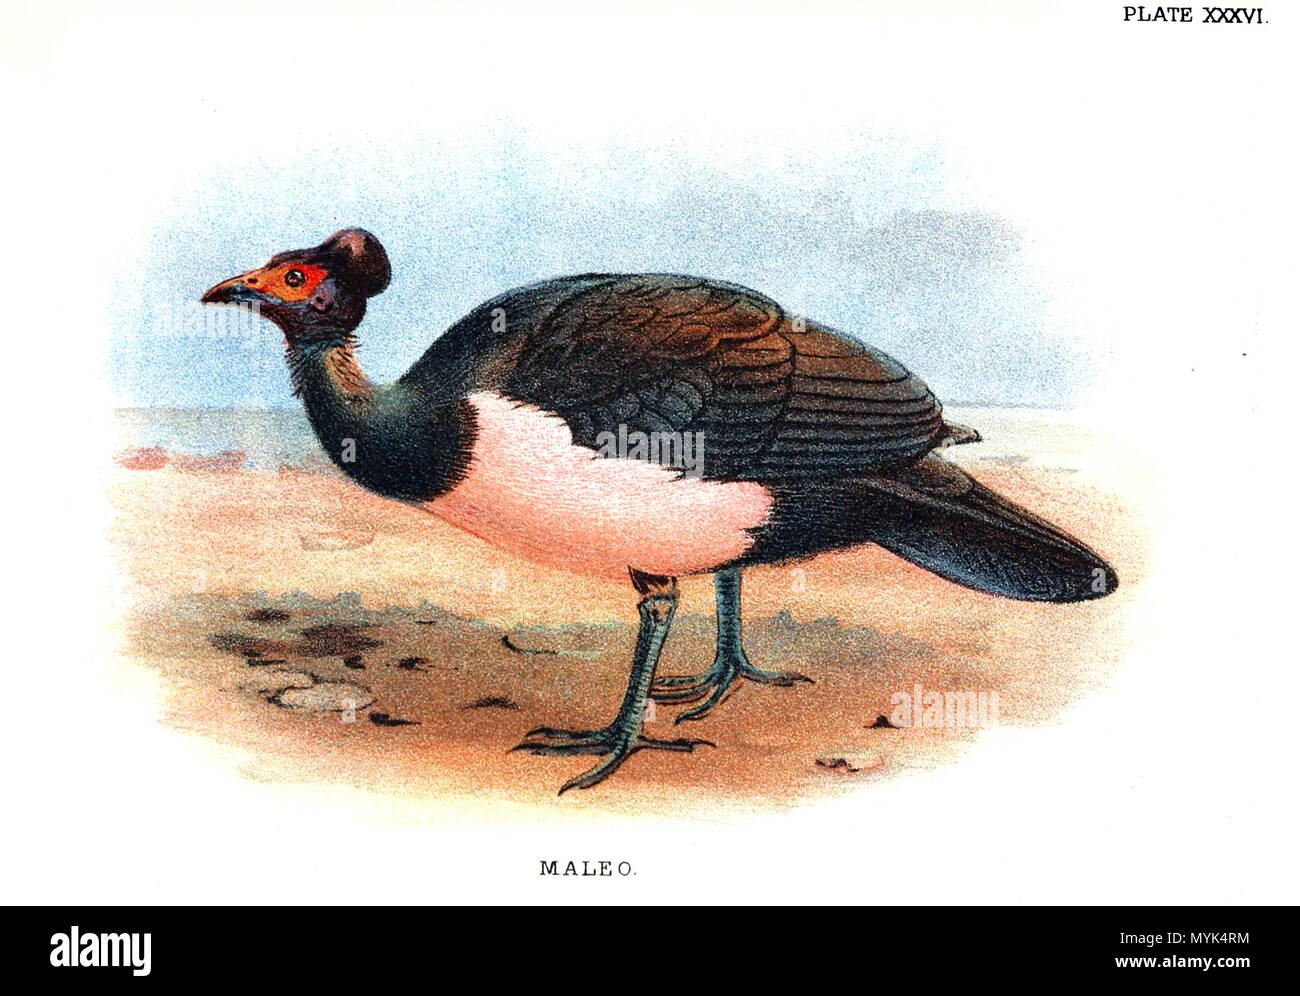 . antique lithograph Print of 'MALEO (Celebes, Sanghir Islands, Indonesia)' published in 1896 for 'Lloyd's Natural History of Game Birds' by W.R.Ogilvie-Grant. Real size of printed area is 5' x 7' (13x18cm). published in 1896. This file is lacking author information. 340 Maleo bird - Stock Image